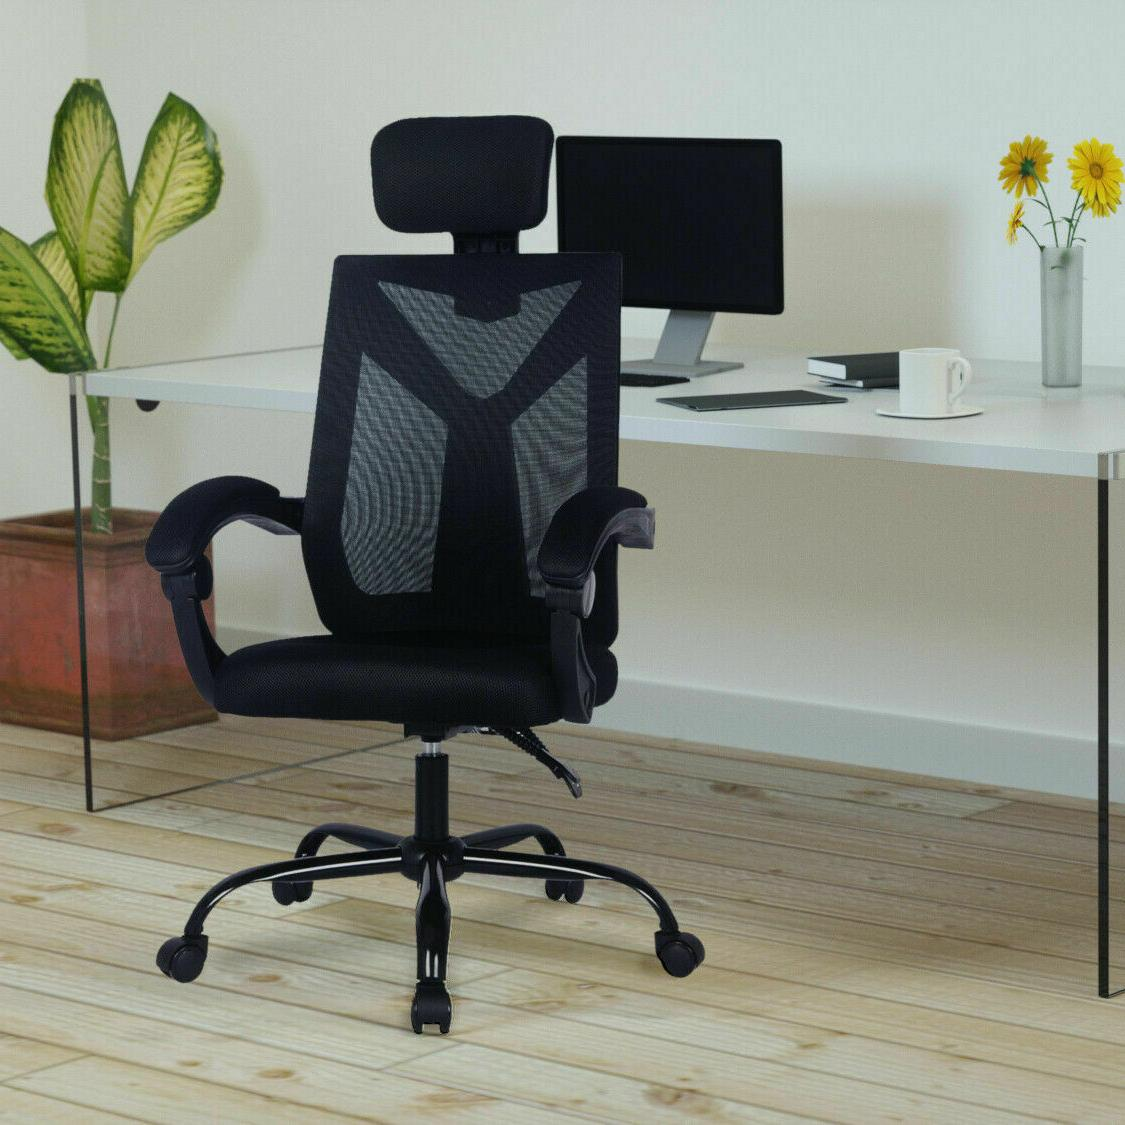 Home Office Back Chair Swivel Computer Desk